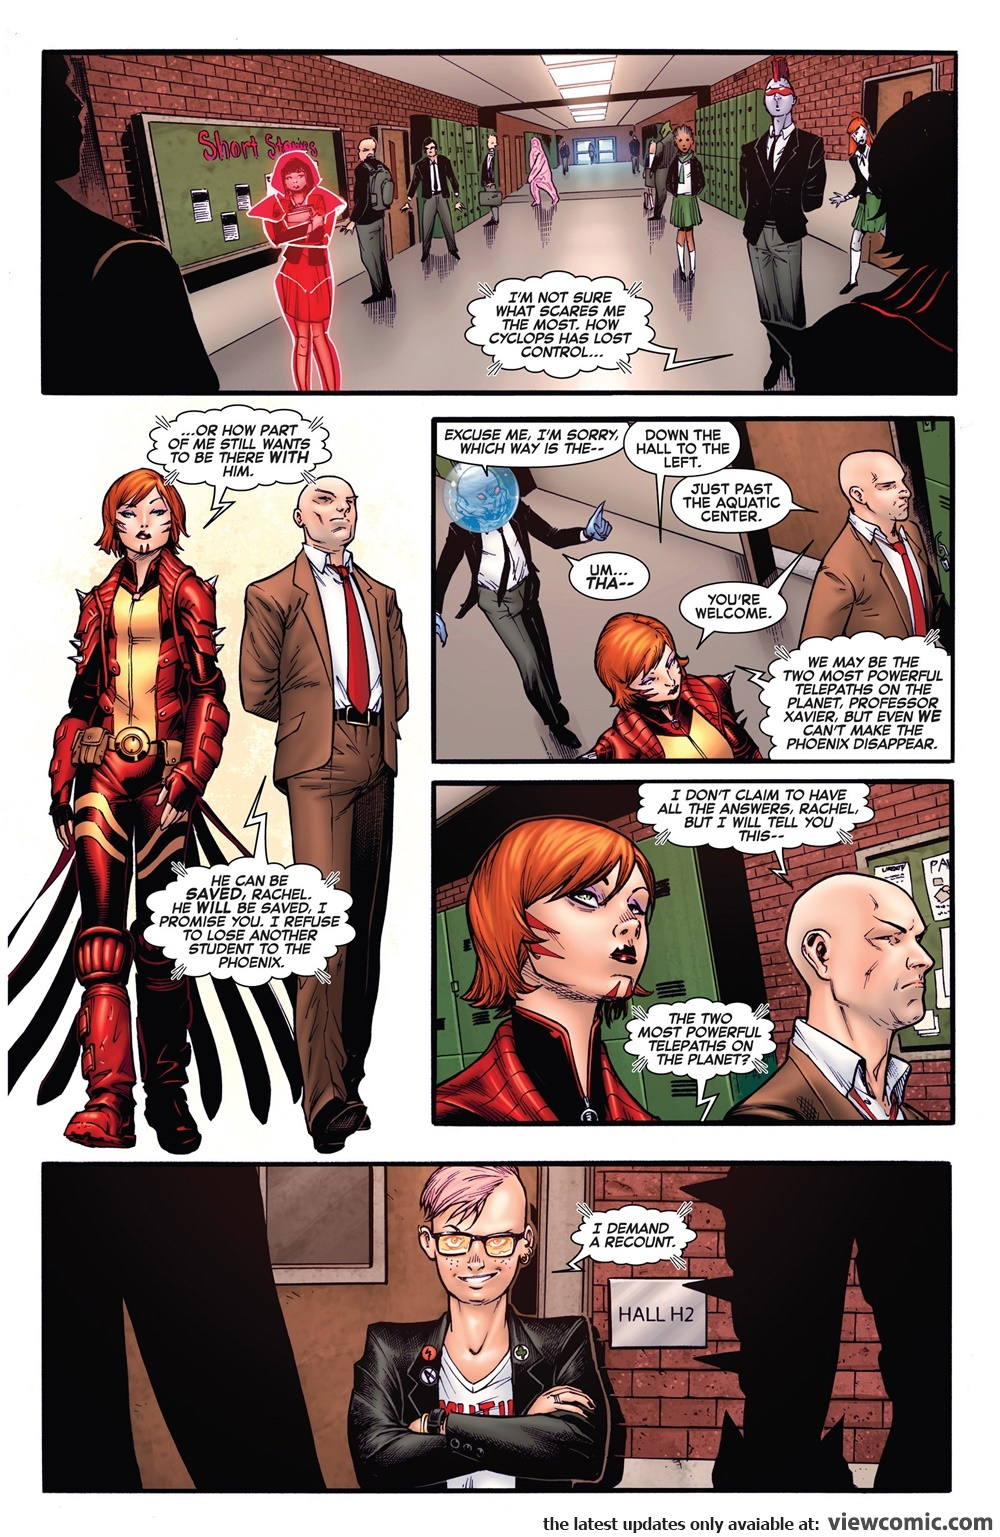 Claims to be one of the 2 most powerful telepaths on the planet during AvX. - Wolverine and the X-Men V1 #15